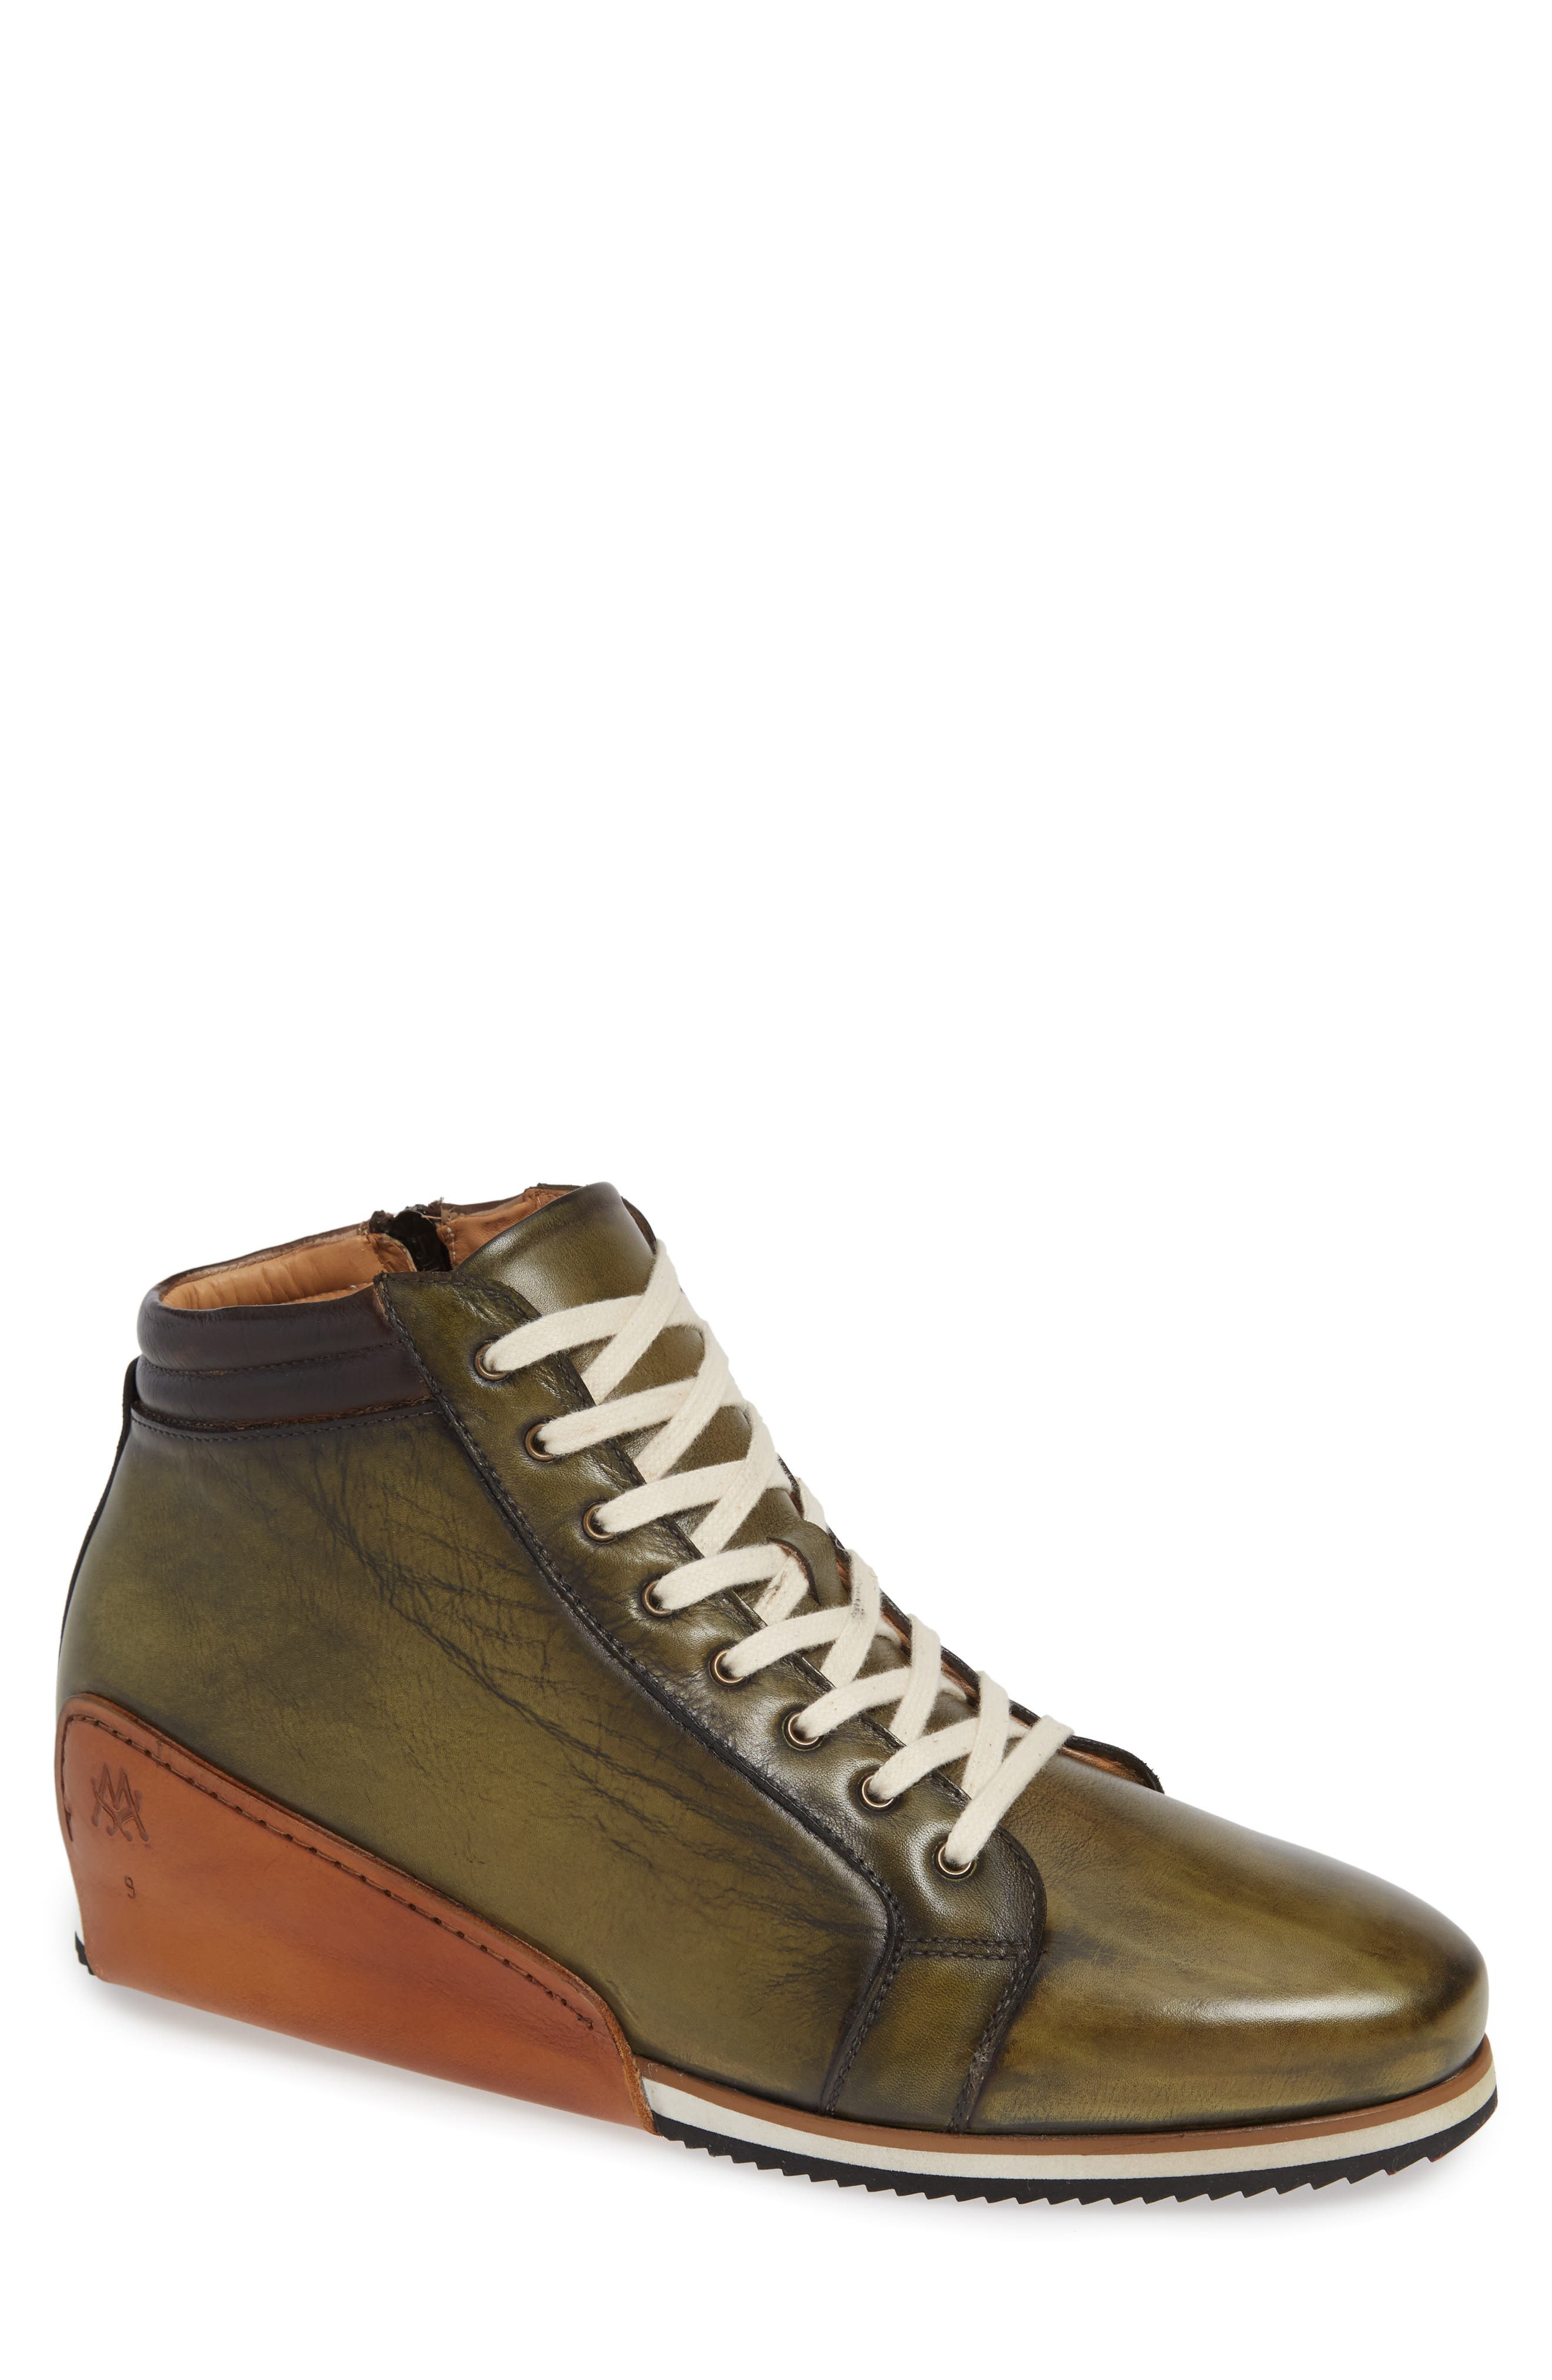 Niro Sneaker in Olive Leather